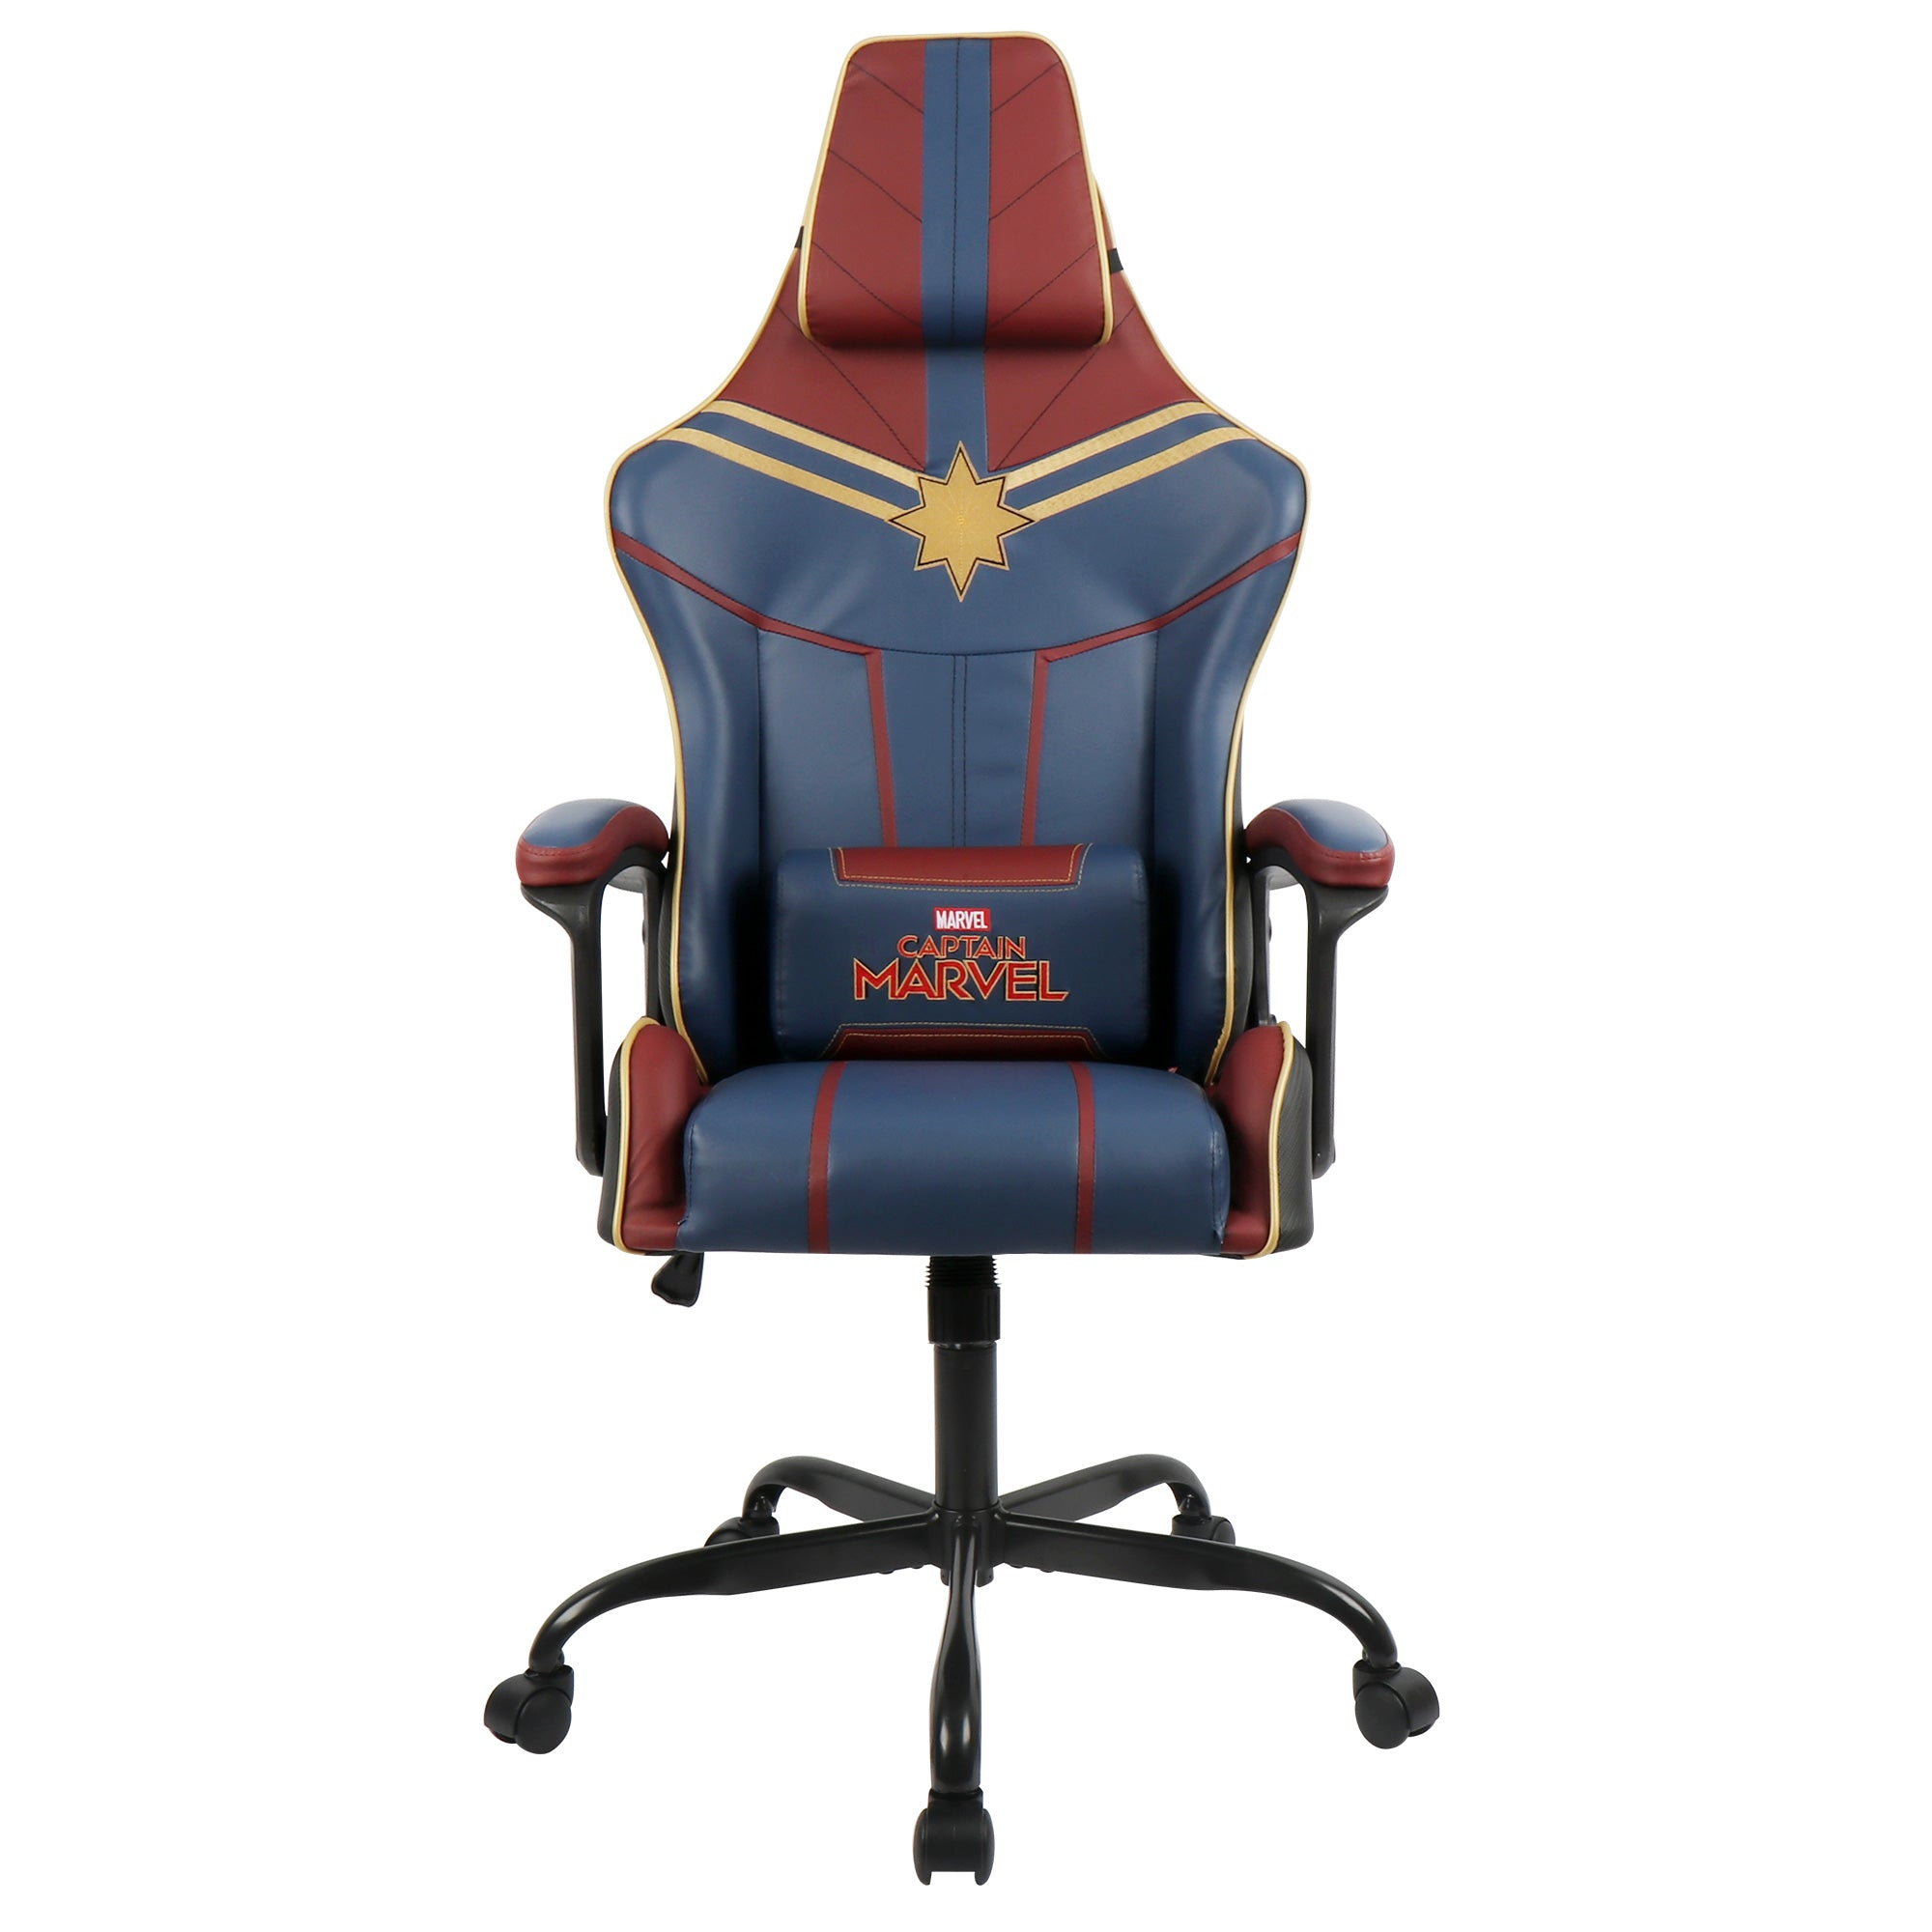 ERC - Marvel Gaming Chair (Captain Marvel)